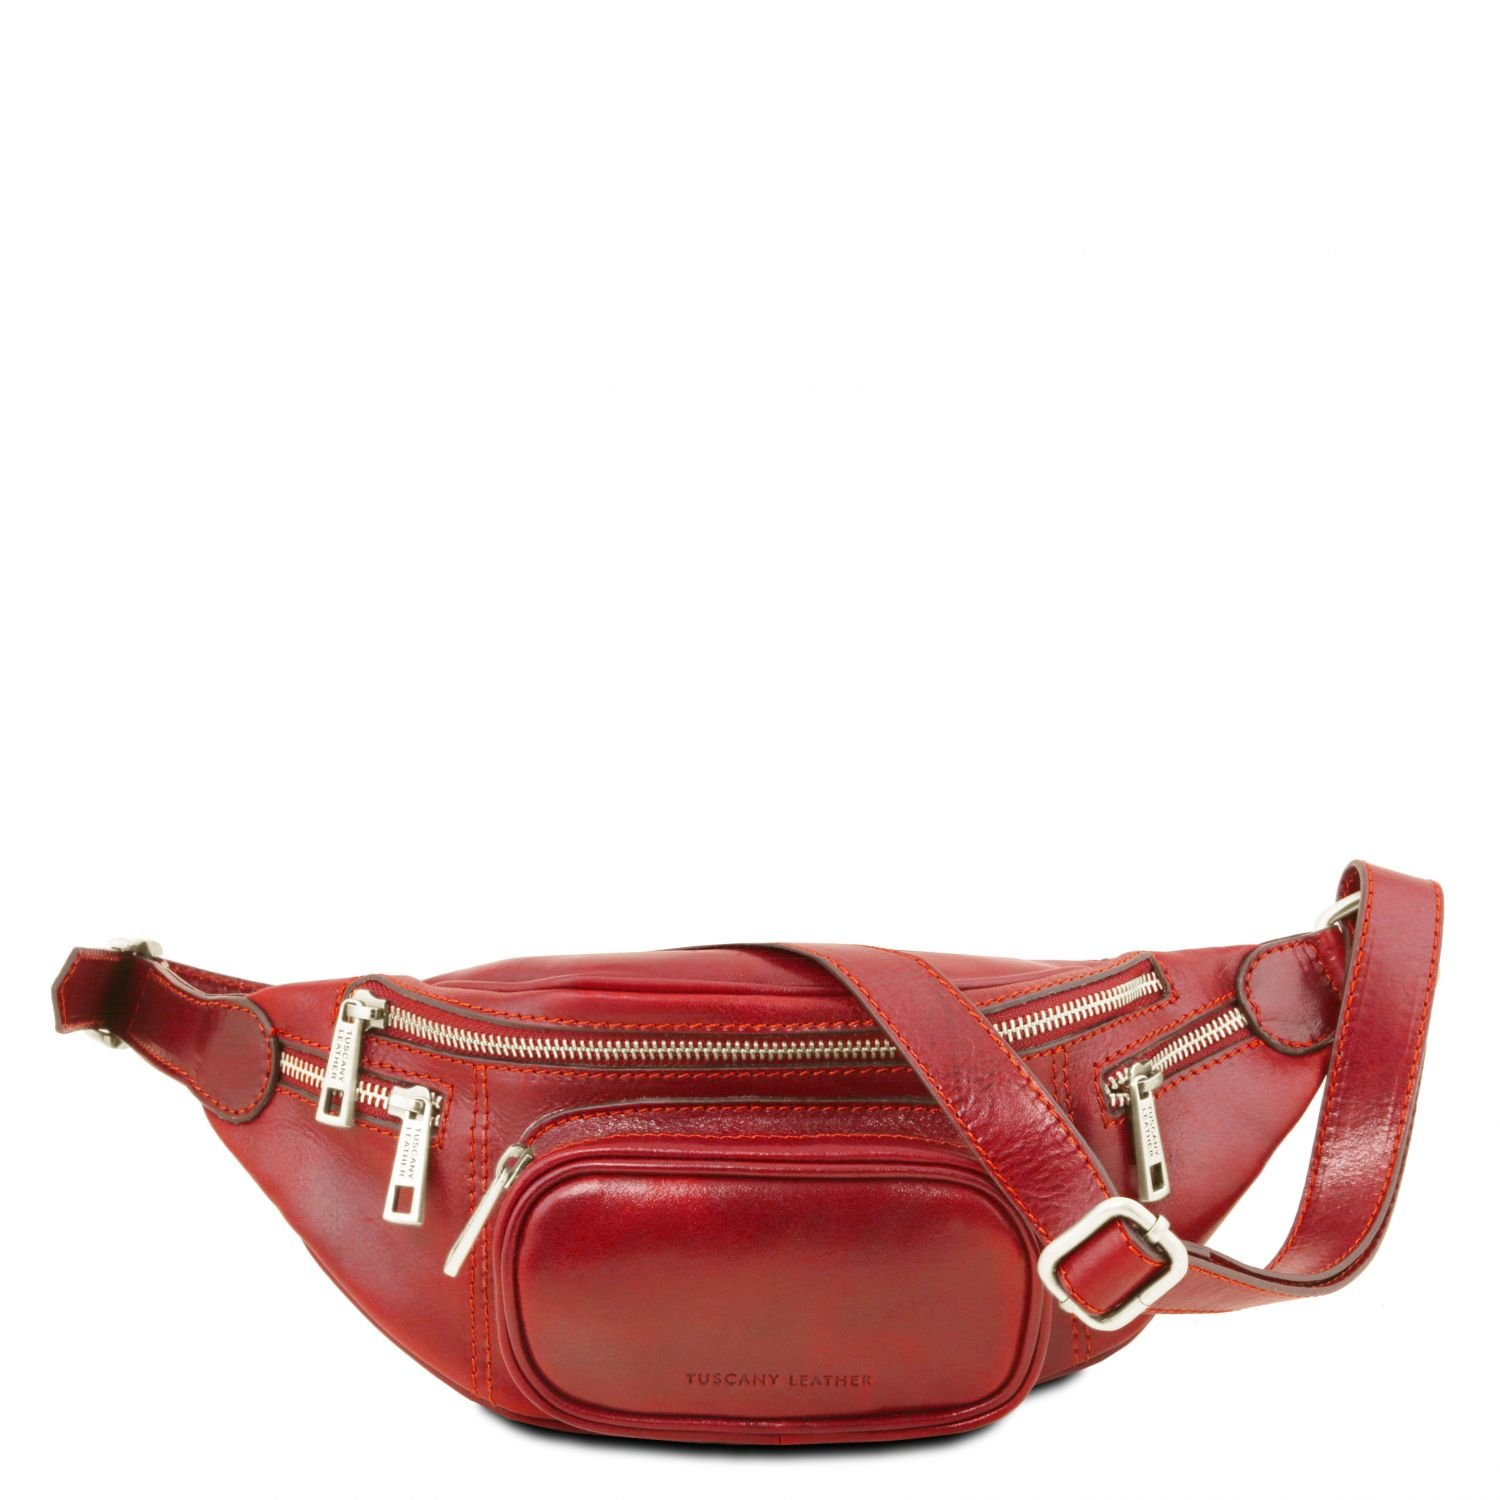 Tuscany Leather - Leather Fanny Pack Red - TL141305/4